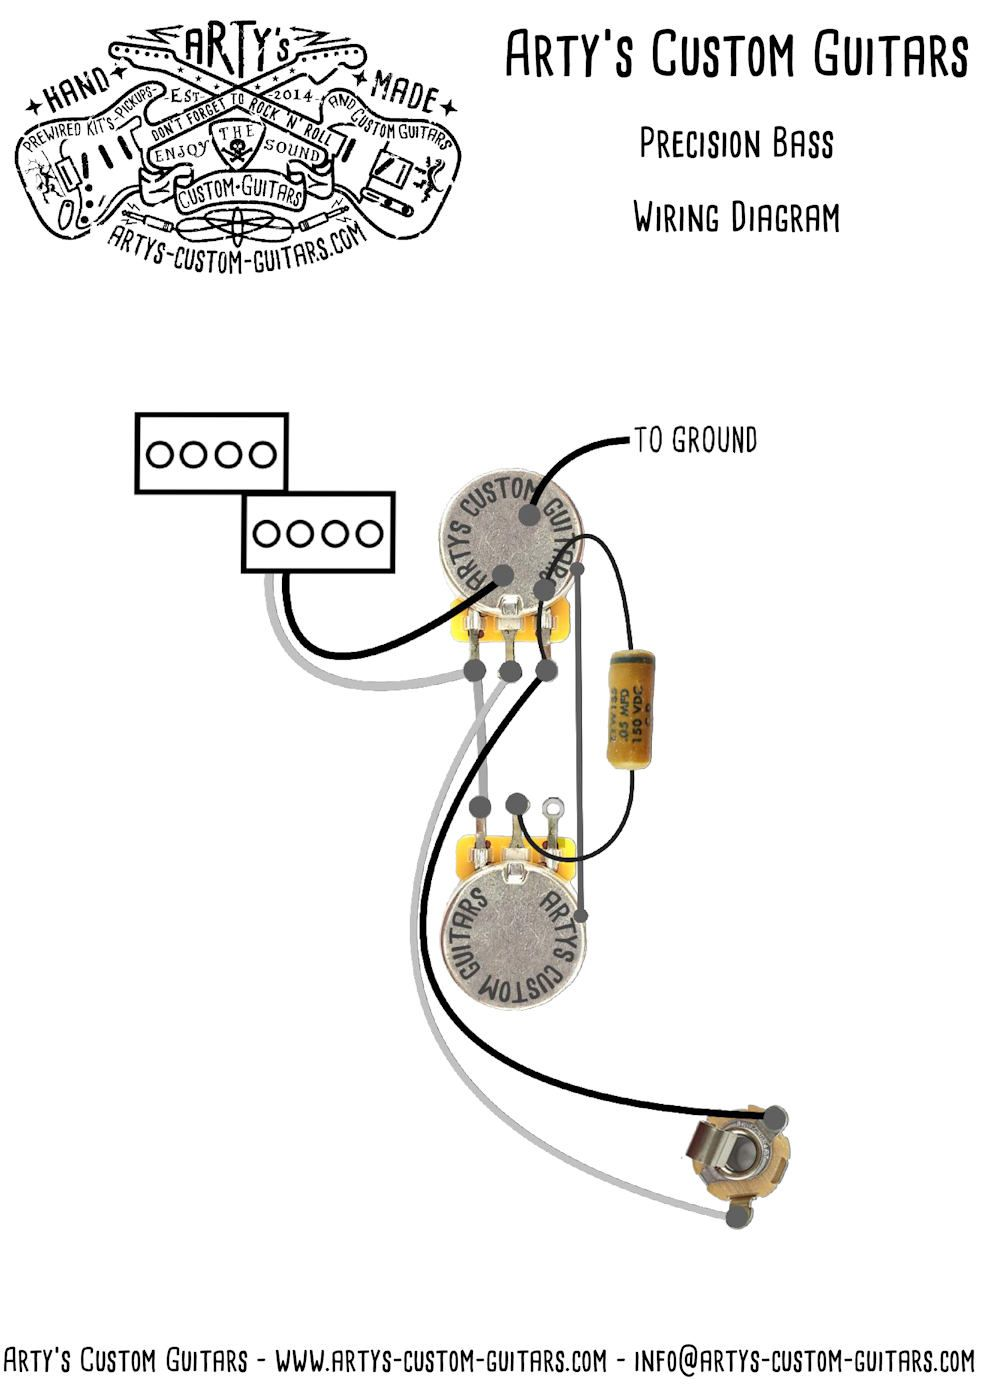 medium resolution of precision bass wiring diagram arty s custom guitars